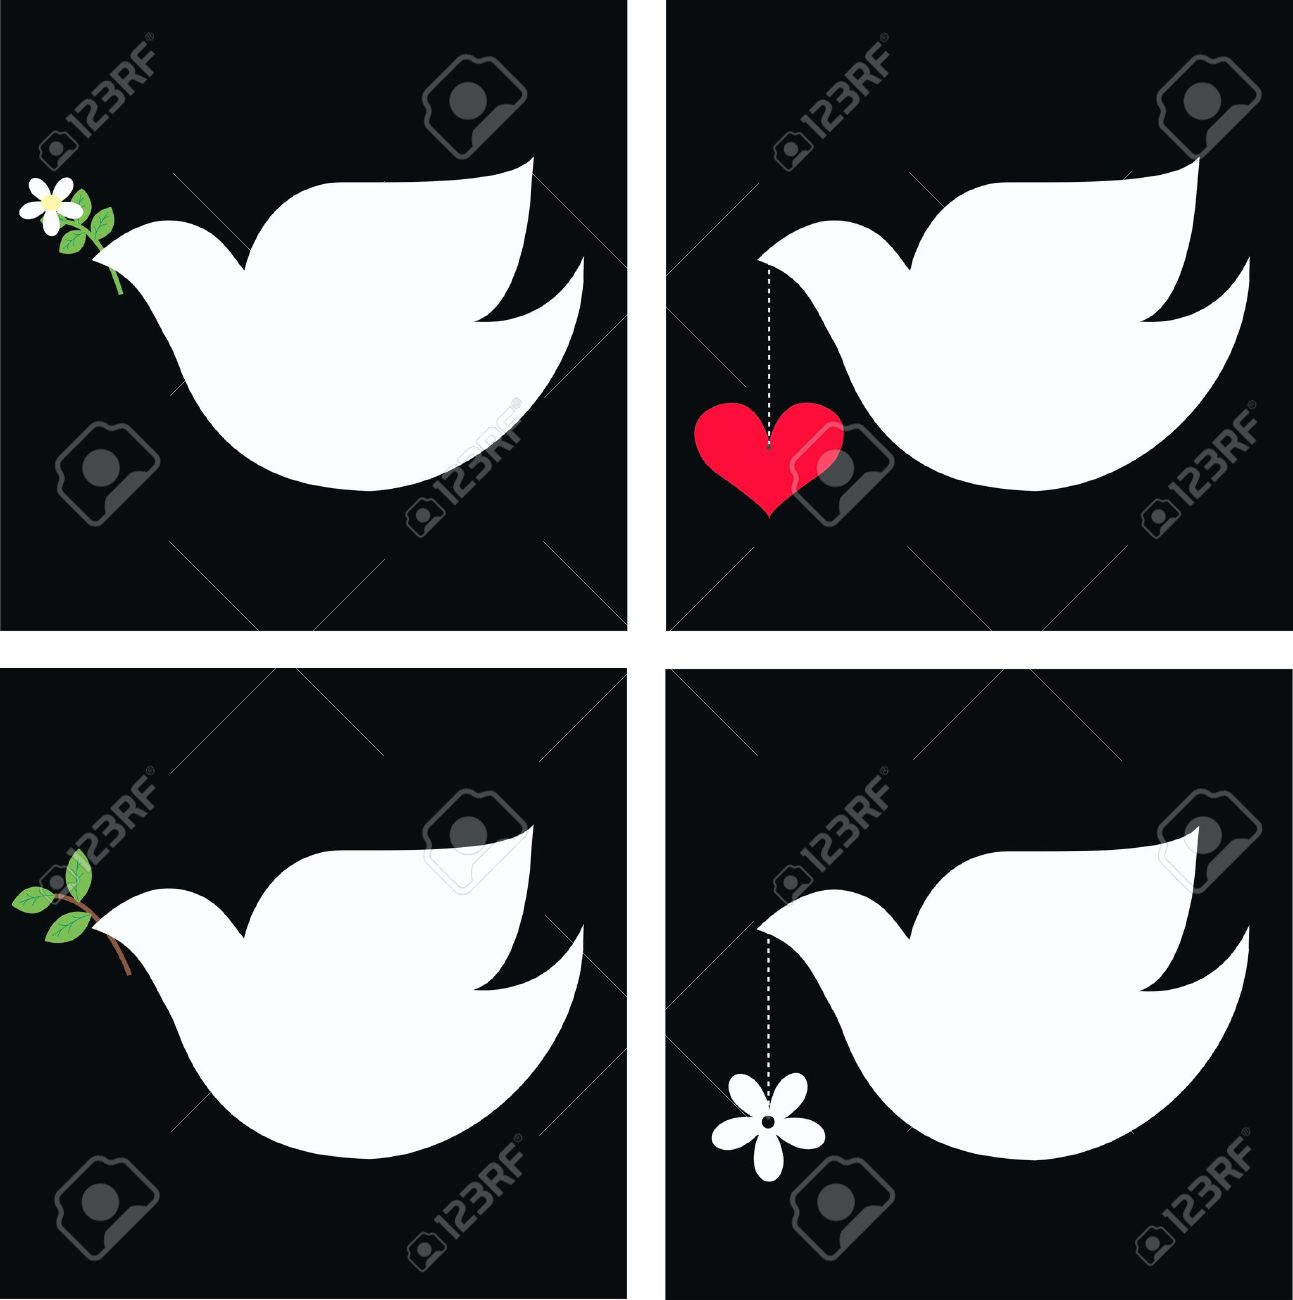 Peace Dove Royalty Free Cliparts, Vectors, And Stock Illustration.